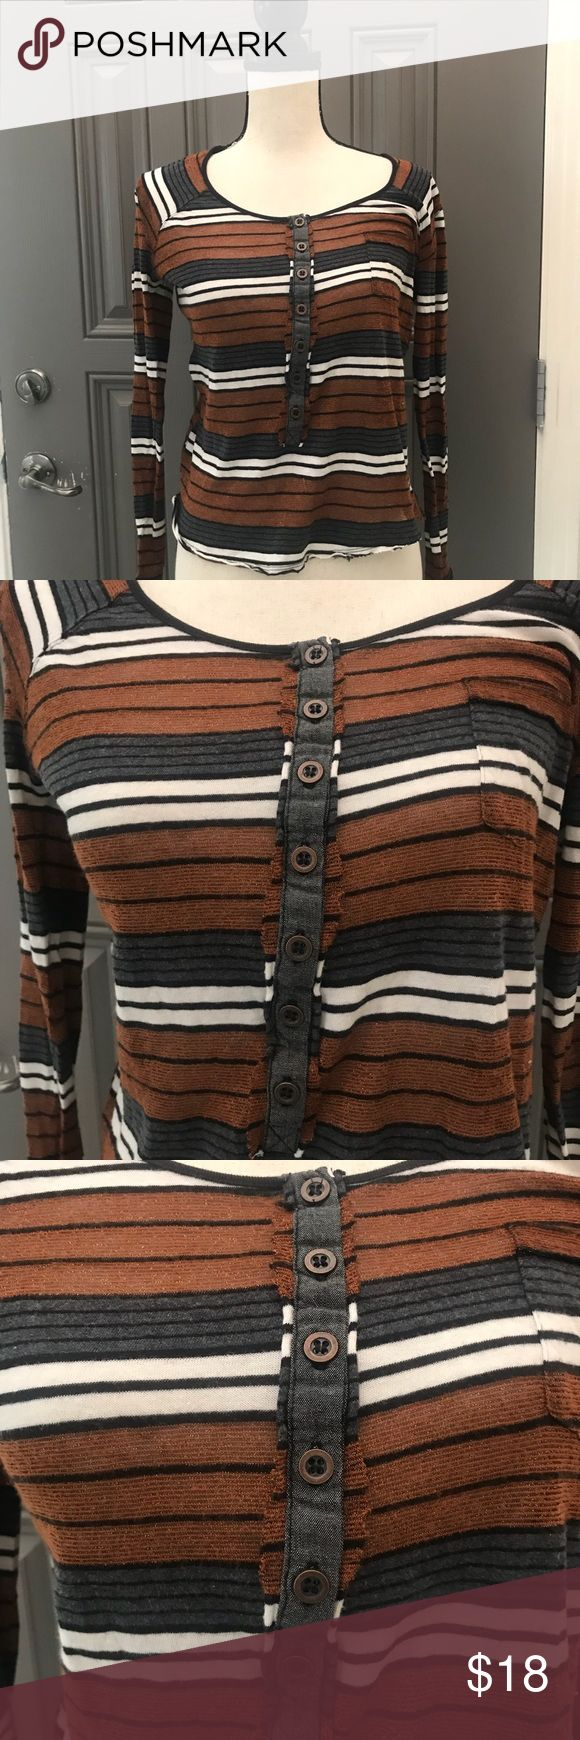 "FP Blouse WE THE FREE Scoop Neck Top Striped Small 1️⃣8️⃣ 100117 ⭐️️Women's Small  ⭐️️ lightweight lightweight Scoop Neck  ⭐️t-Shirt  ⭐️Brown Gray Black  Approximate measurements laying flat Bust 18.5"" length 20"" 🚫trades holds modeling please Free People Tops Tees - Long Sleeve"